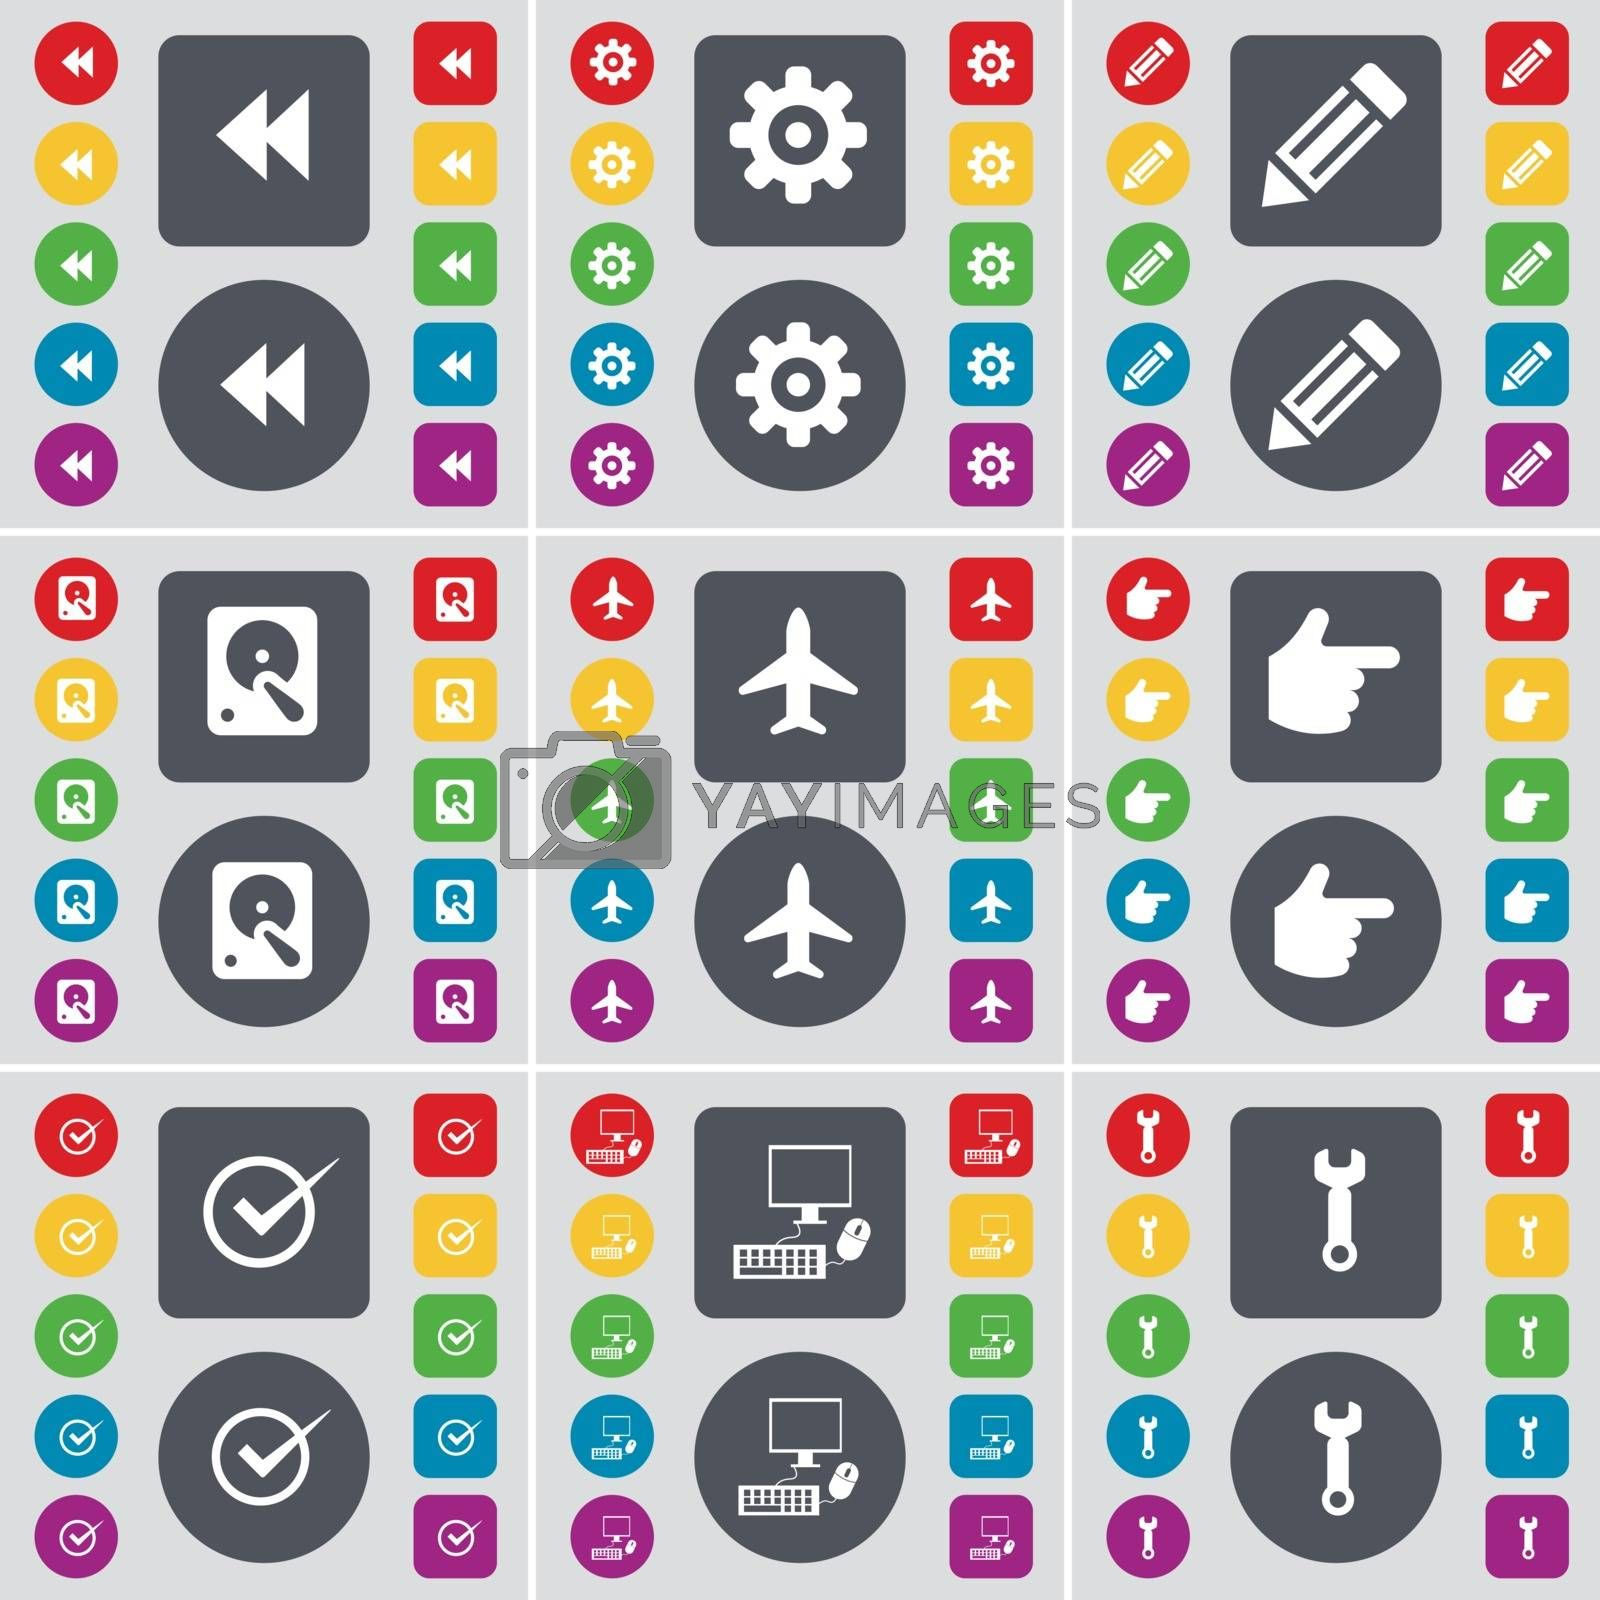 Royalty free image of Rewind, Gear, Pencil, Hard drive, Airplane, Hand, Tick, PC, Wrench icon symbol. A large set of flat, colored buttons for your design. Vector by serhii_lohvyniuk